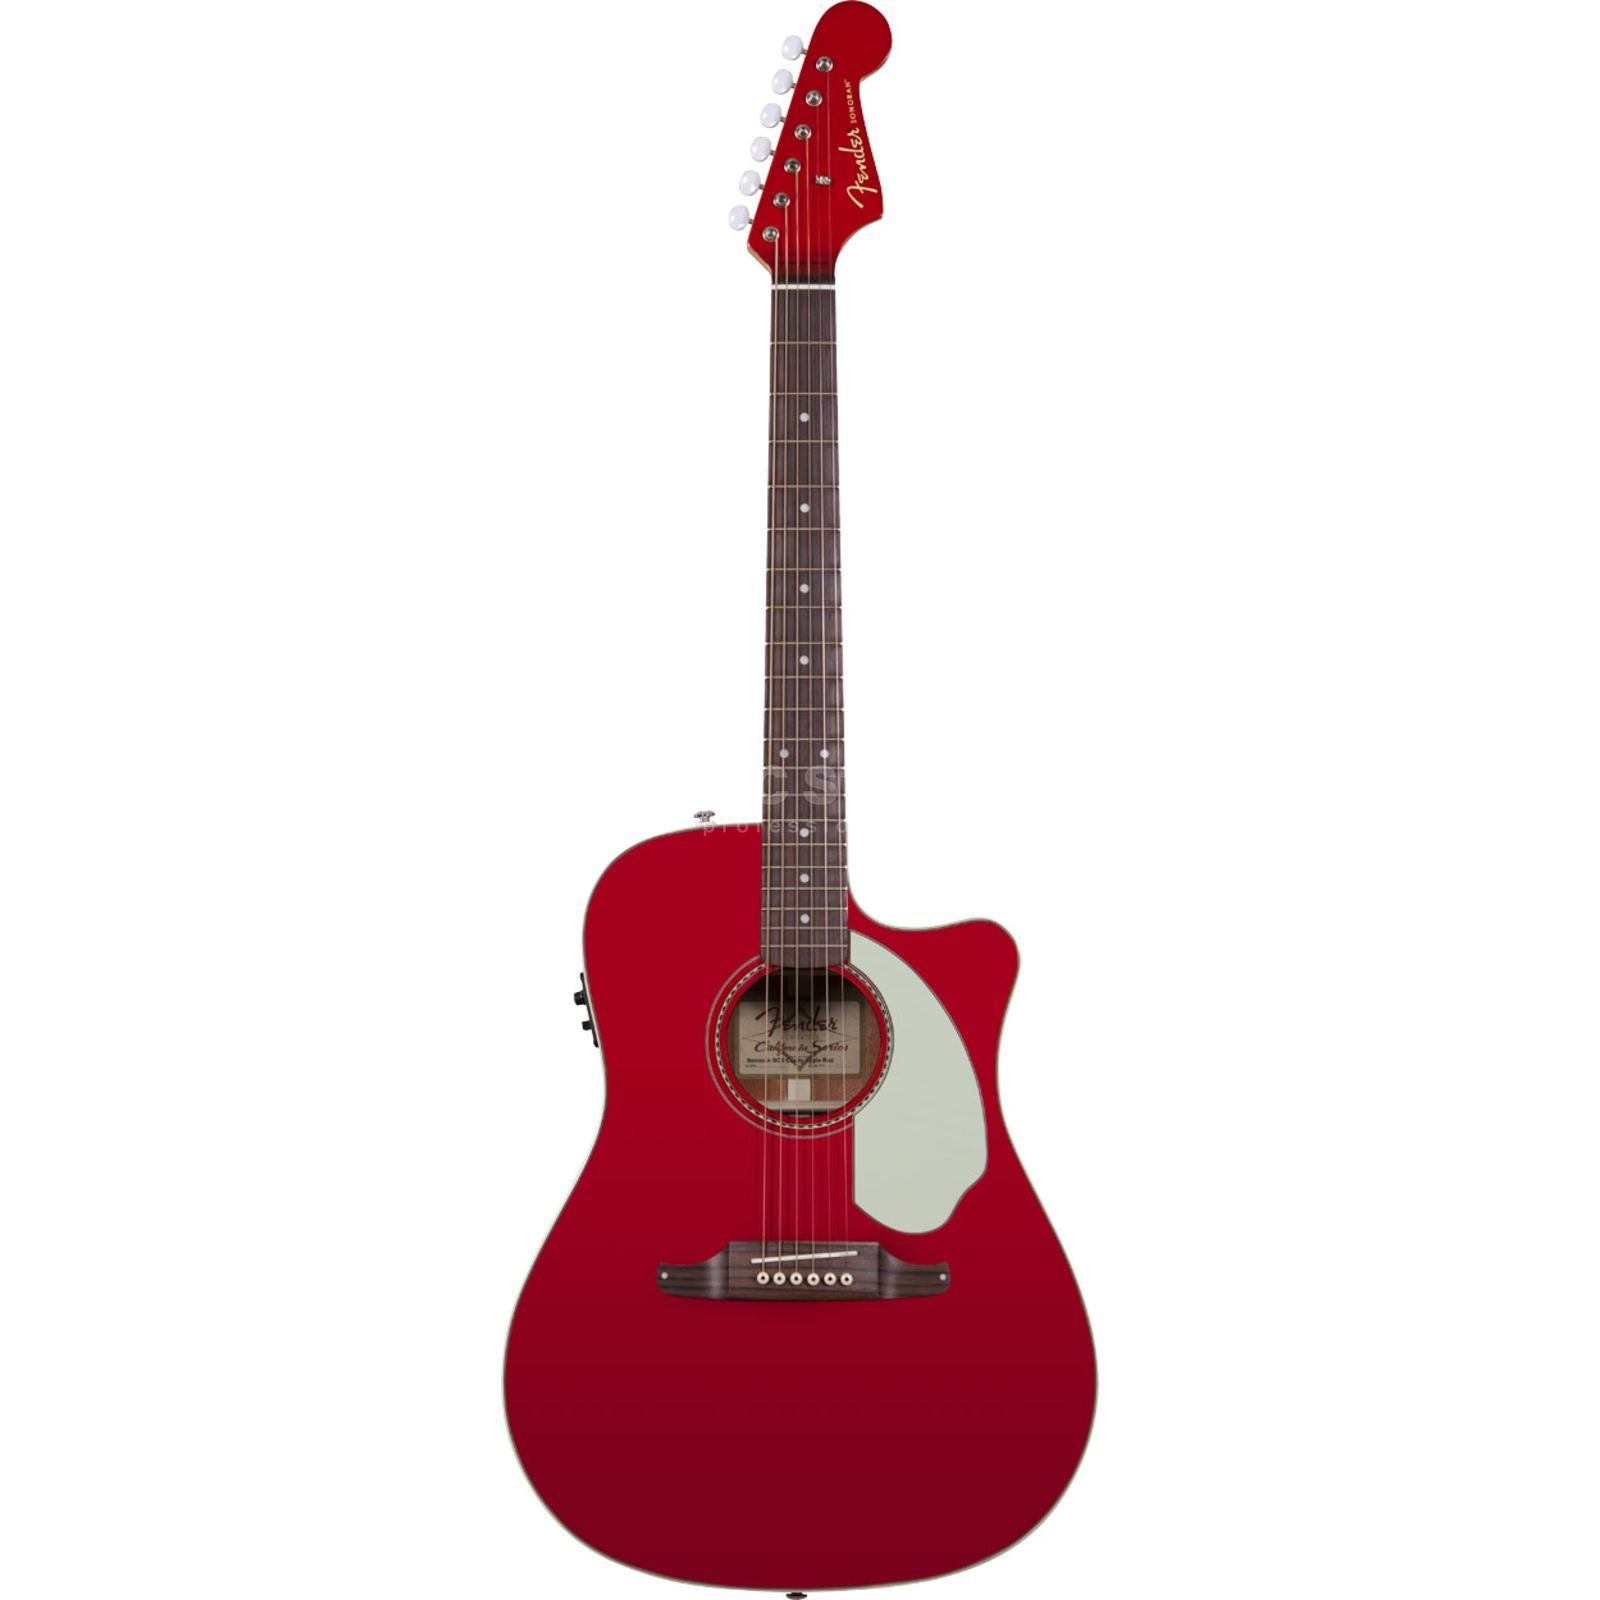 Fender Sonoran SCE Candy Apple Red Solid top, Fishman Isys III Produktbillede